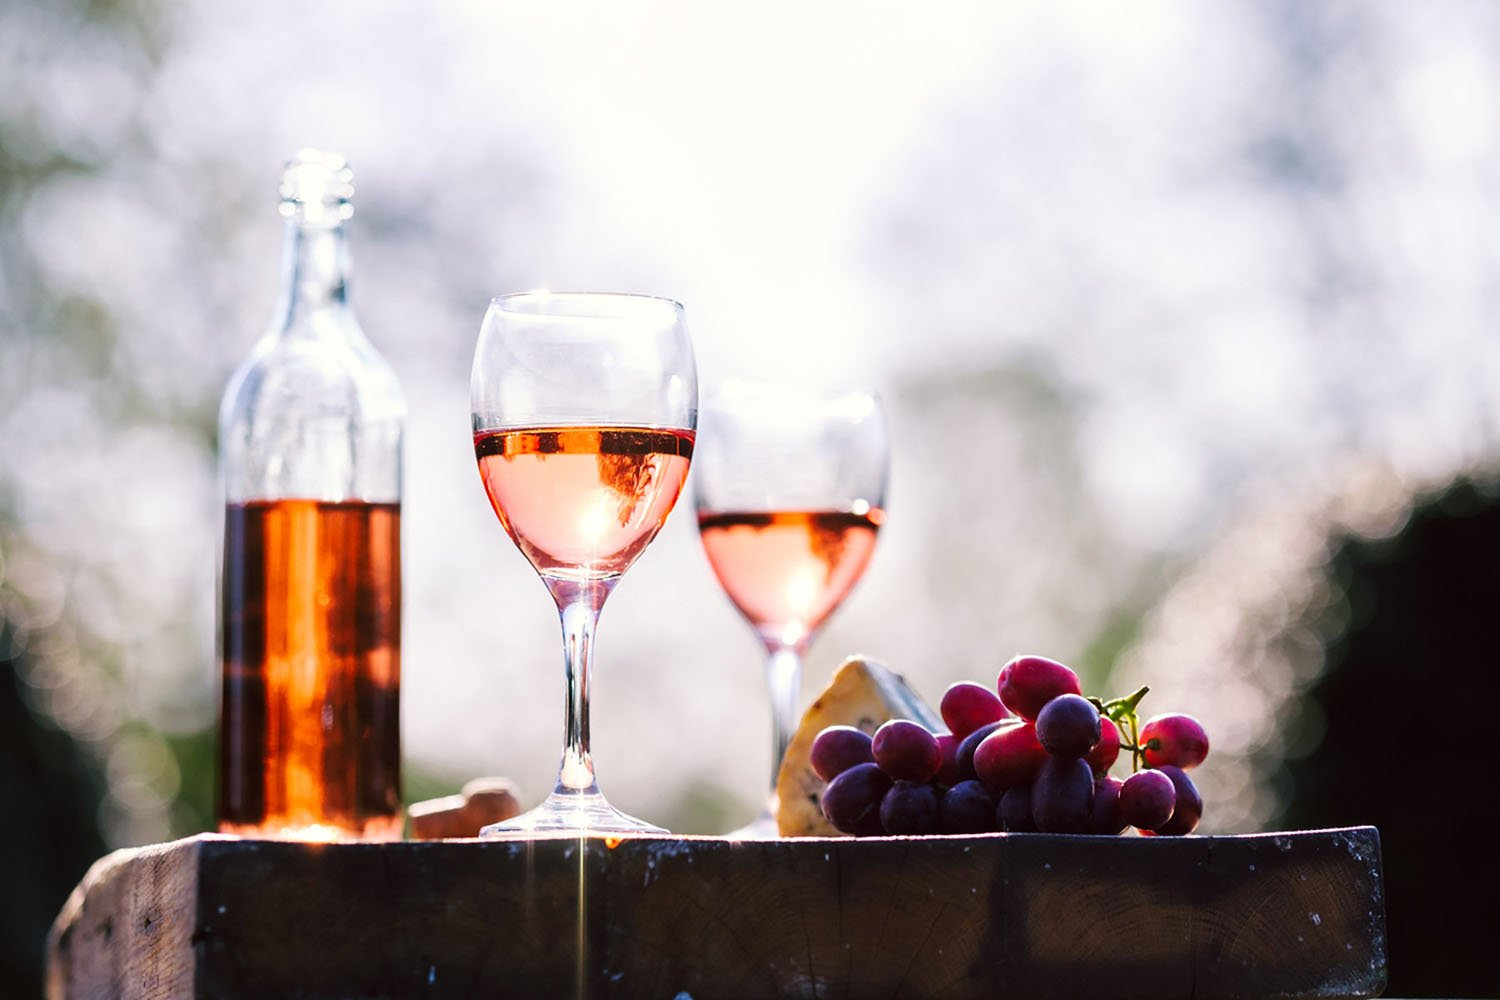 In Provence, rosé makes up two-thirds of all wine production, making it a must-try!